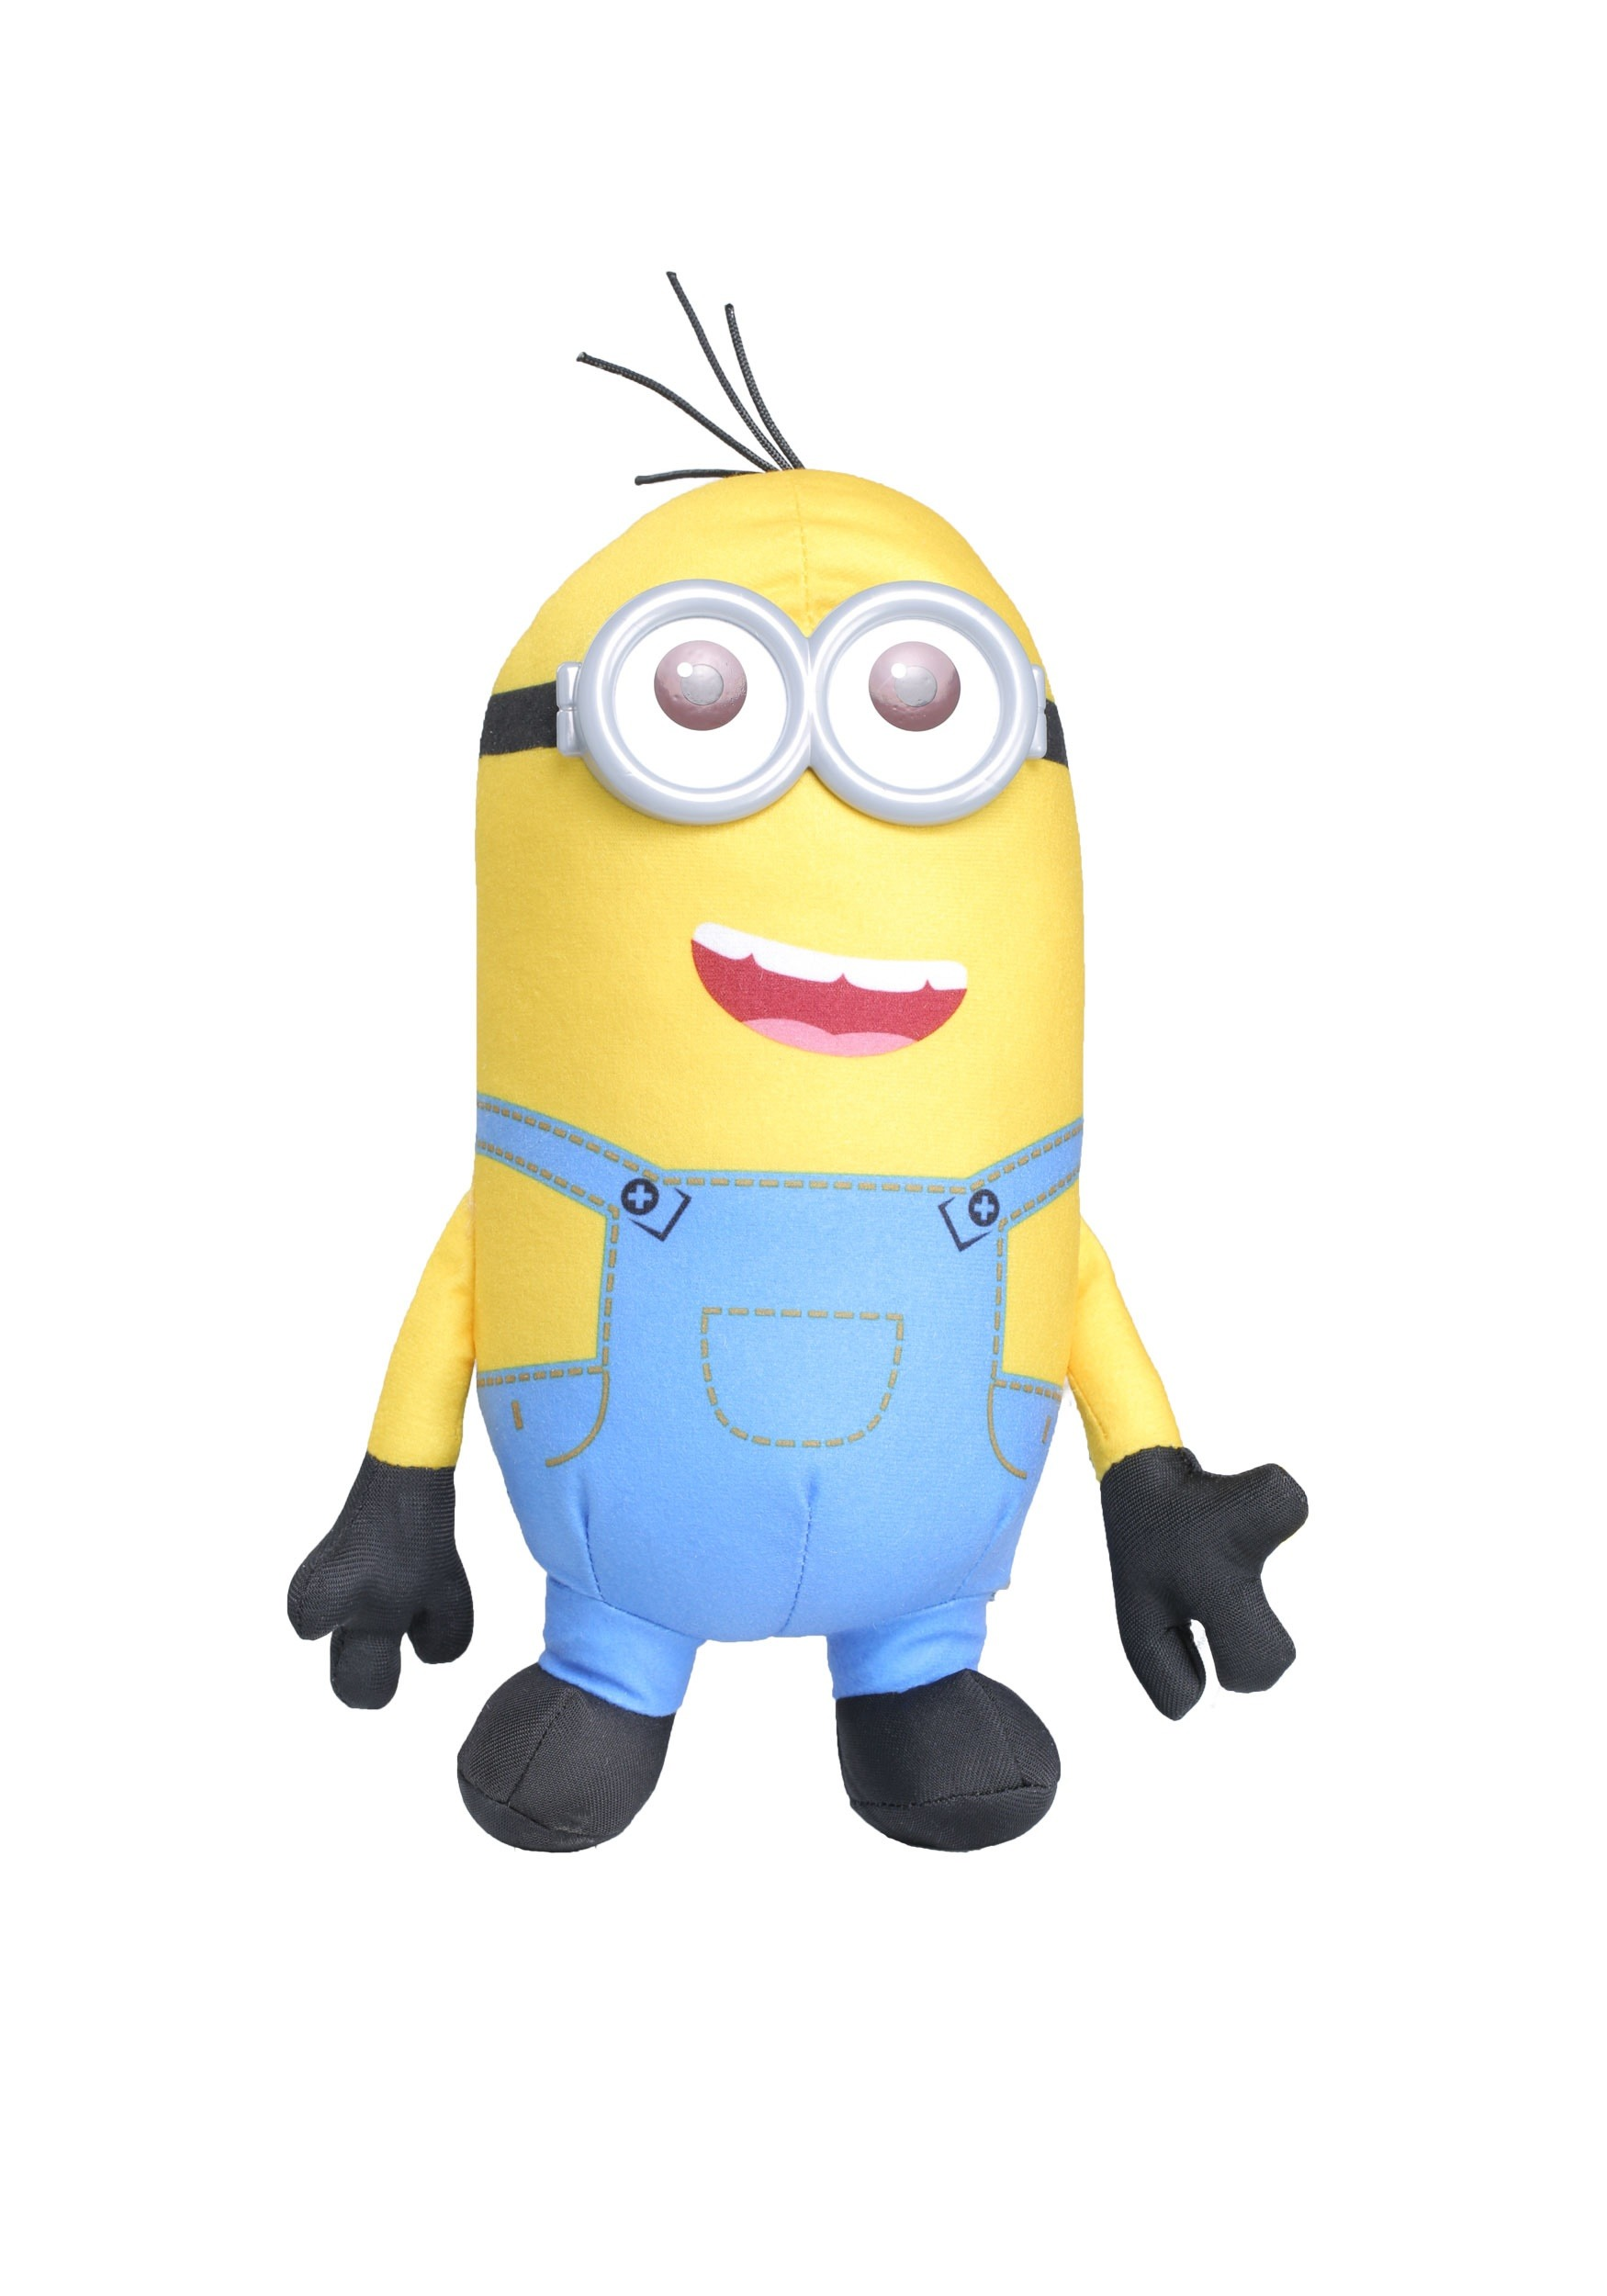 8 Quot Kevin Printed Stuffed Figure From The Minions